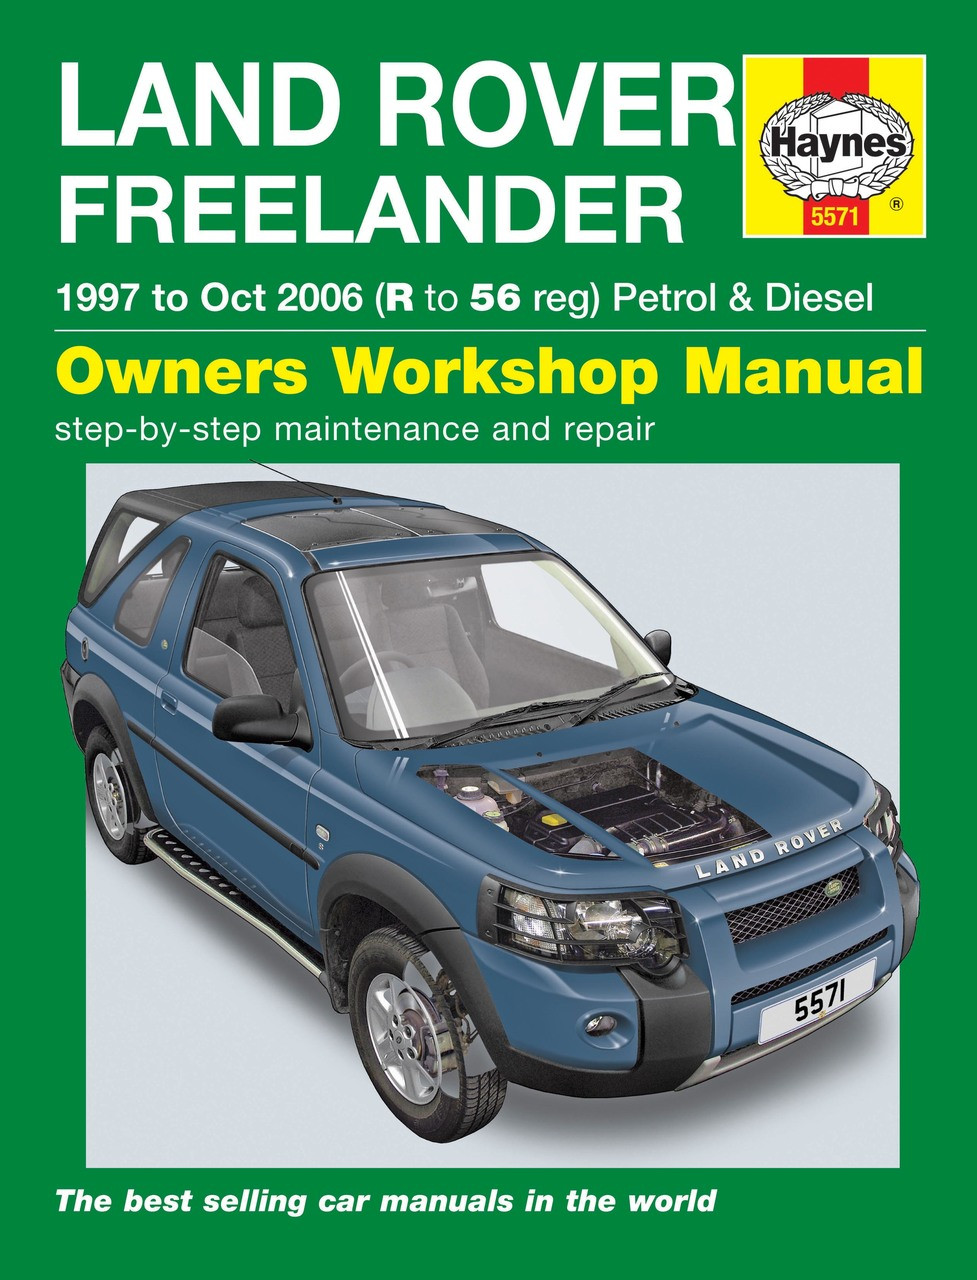 small resolution of land rover freelander 1997 2006 workshop manual repair diagrams for 2004 land rover freelander engine transmission